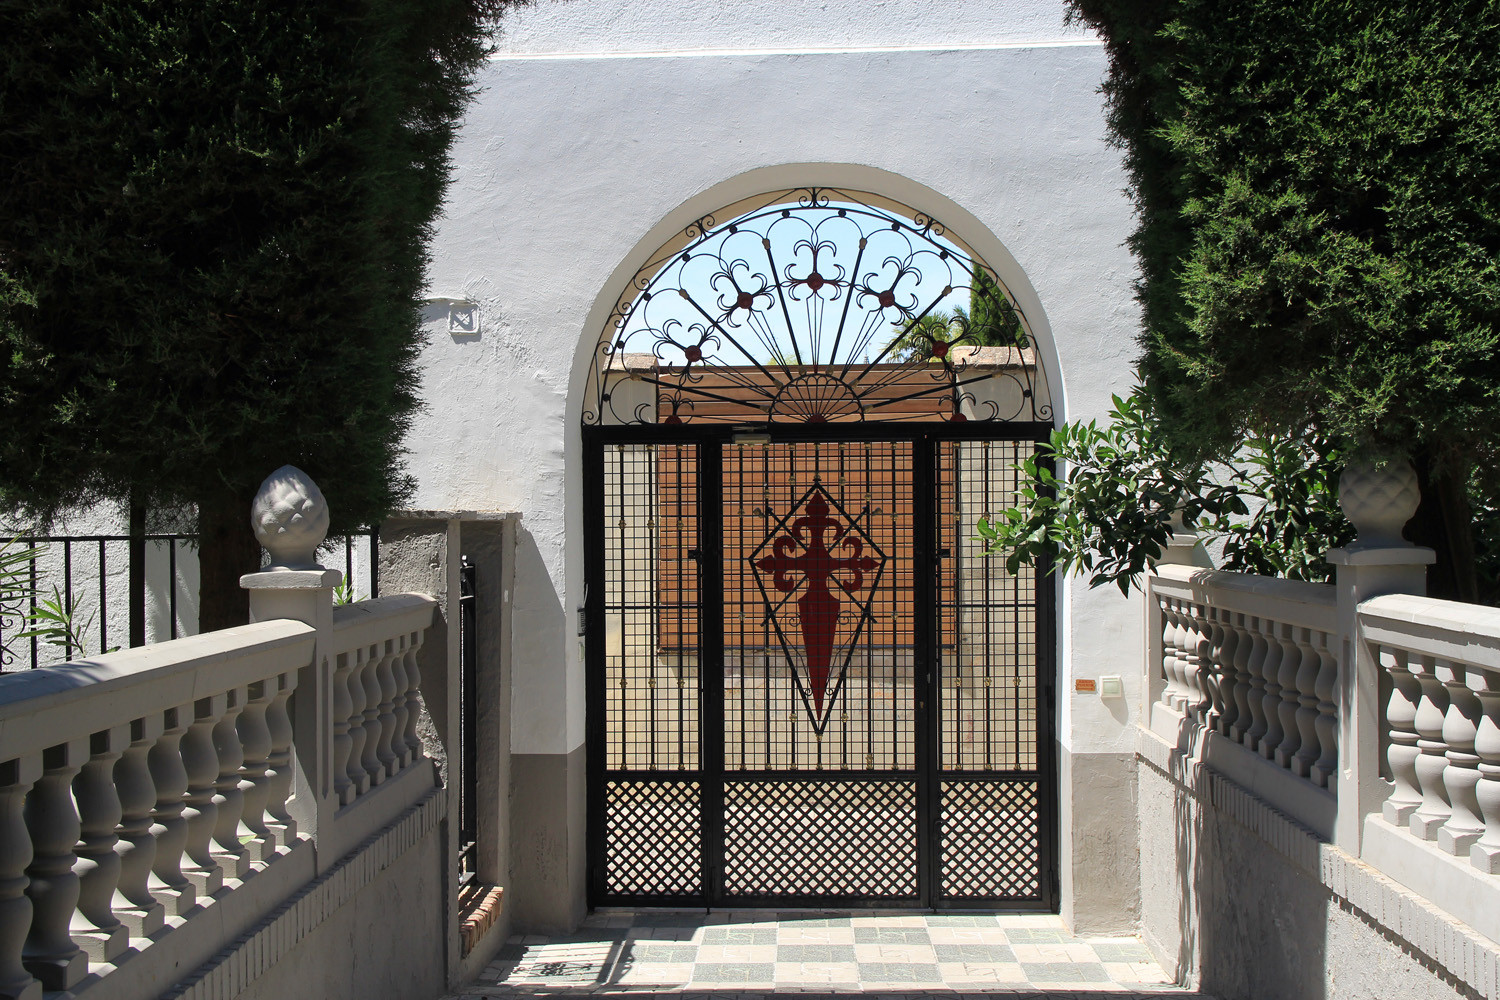 The door at the street side